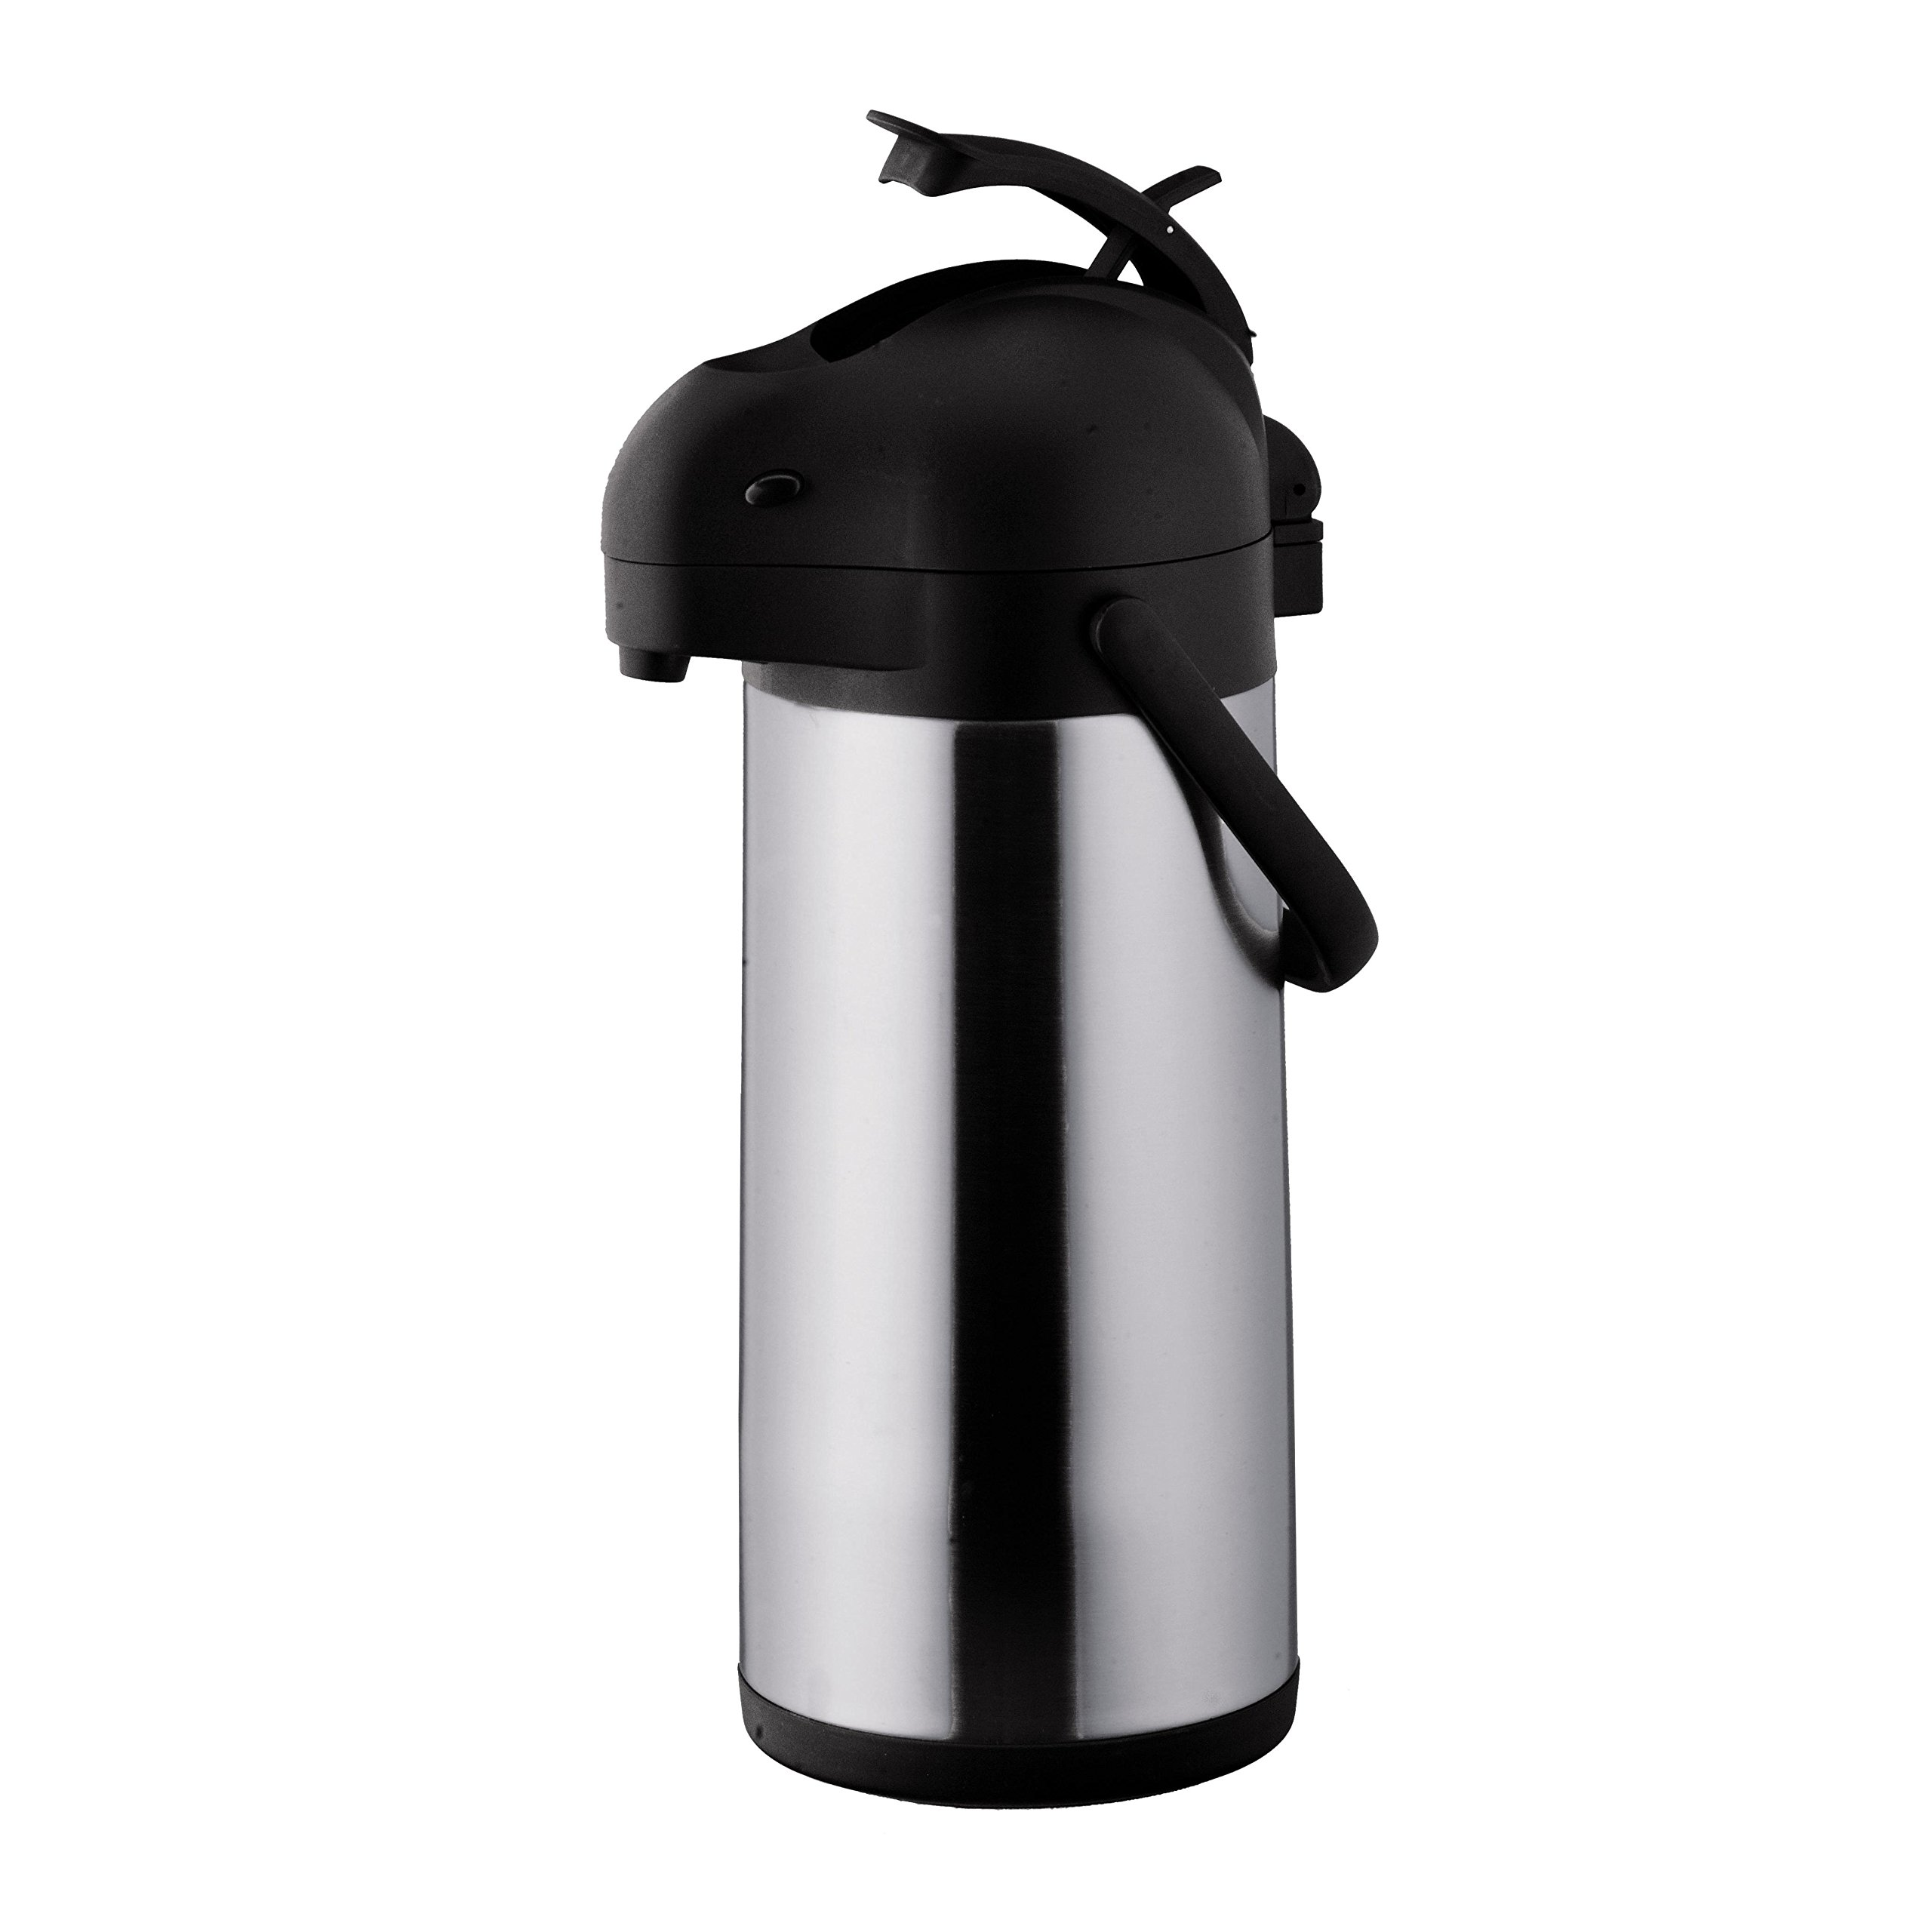 Chef's Supreme - 2.2 L Black Stainless Airpot w/ Lever